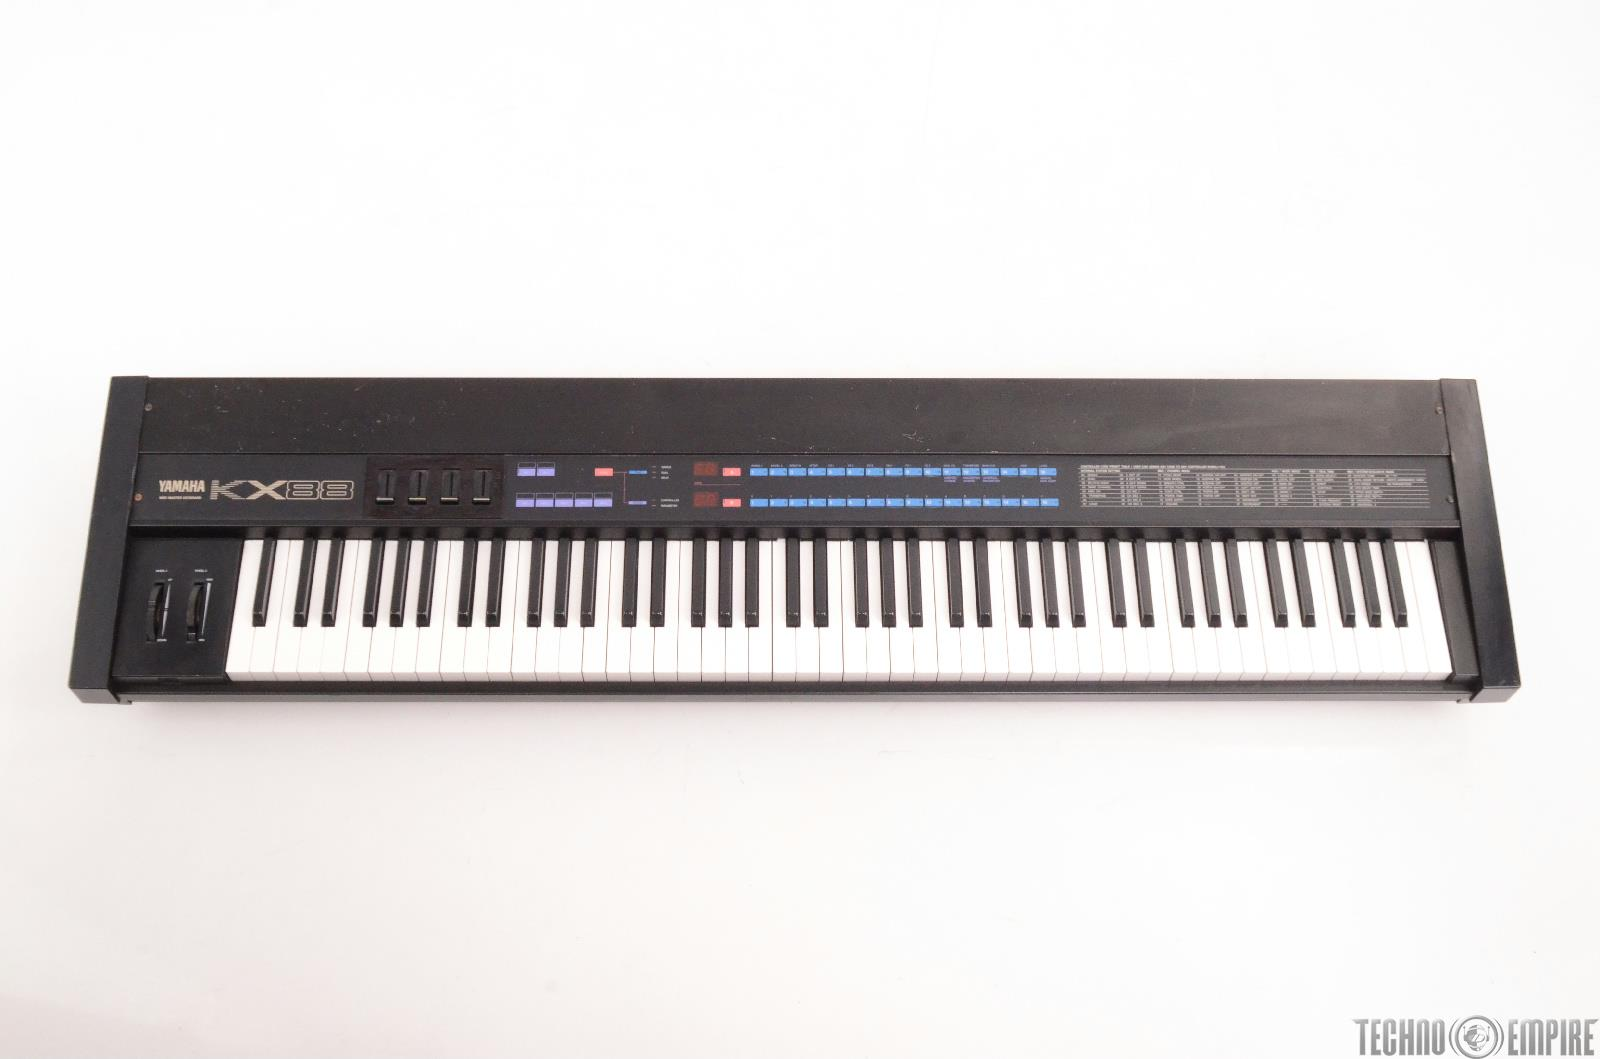 Yamaha kx88 piano midi controller master keyboard weighted keys 24484 ebay for Yamaha fully weighted keyboard